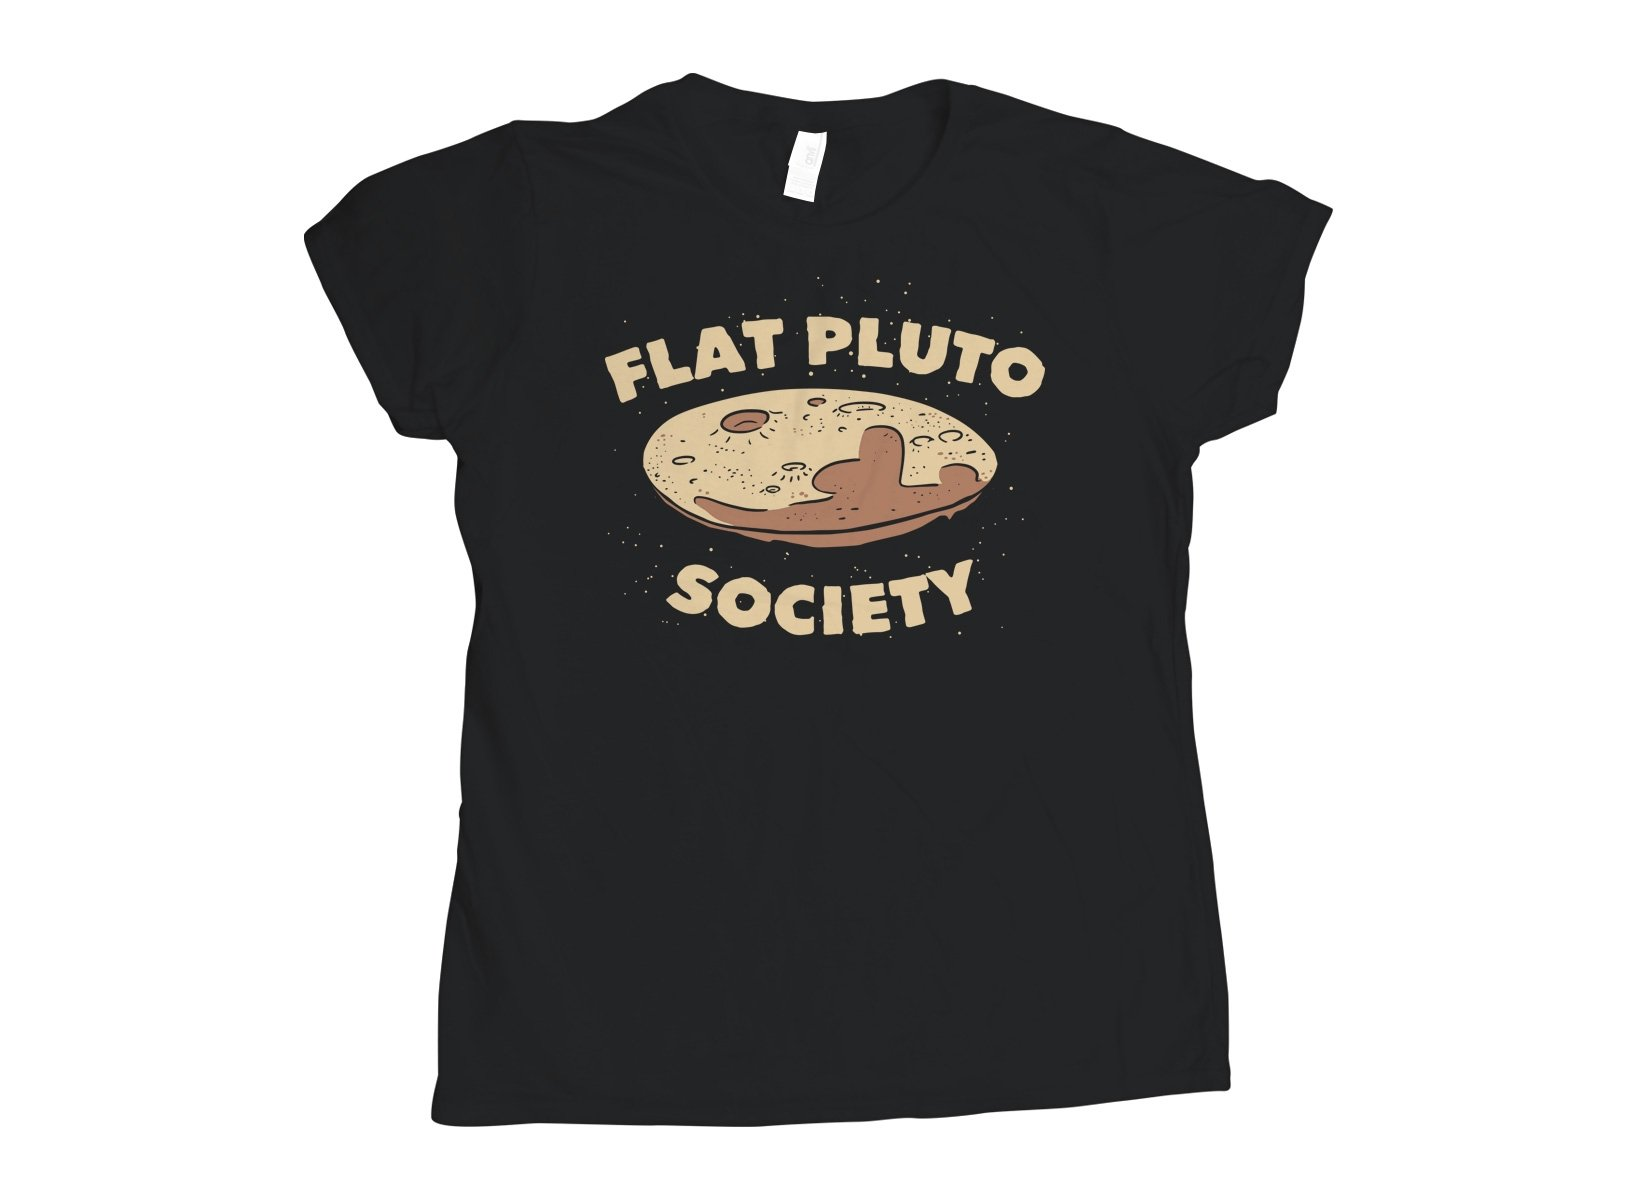 Flat Pluto Society on Womens T-Shirt